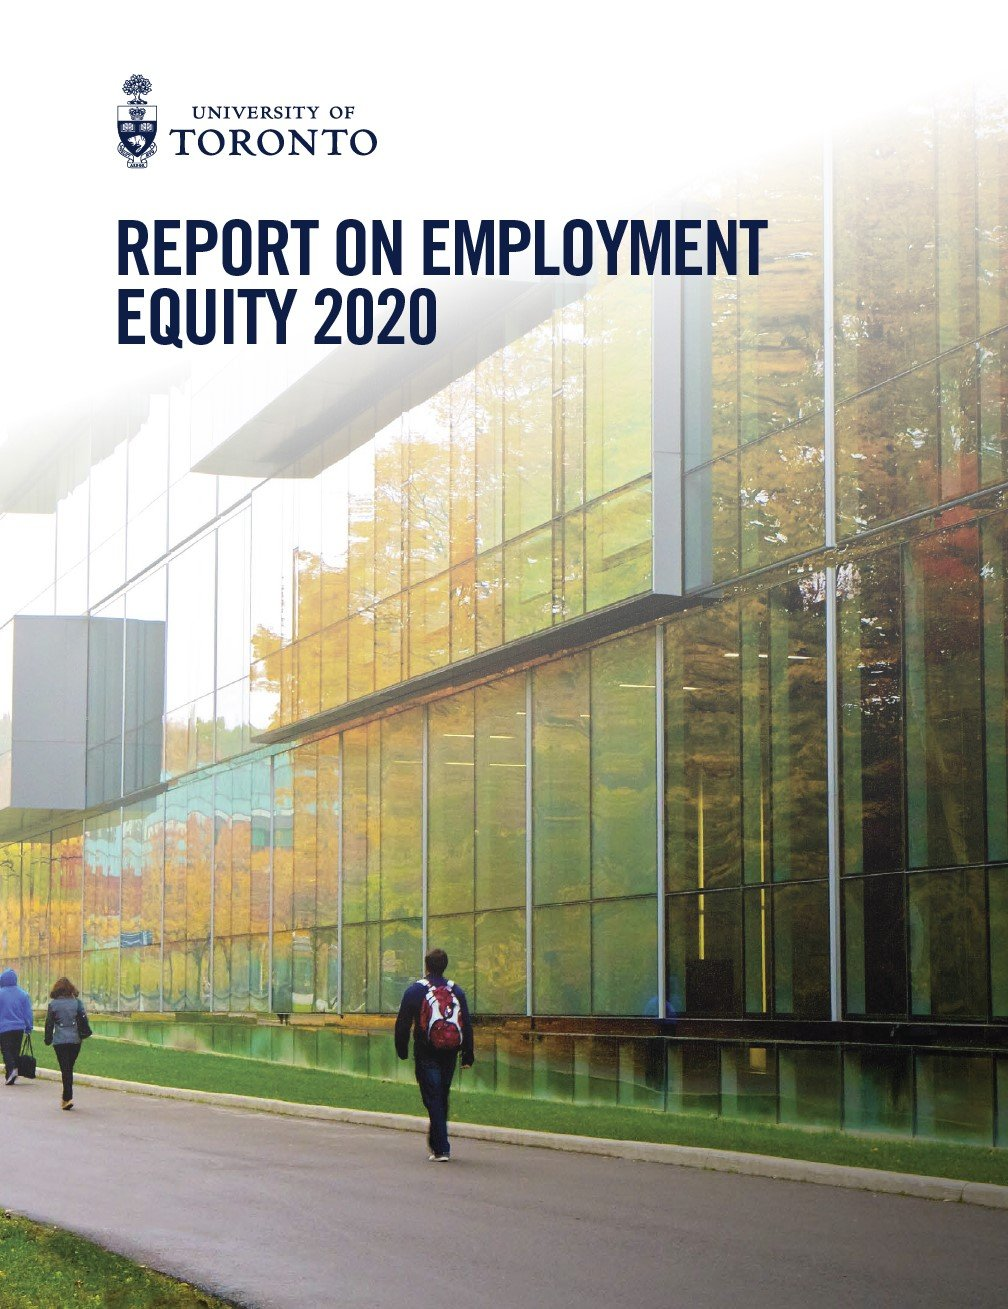 Read the Report on Employment Equity 2020